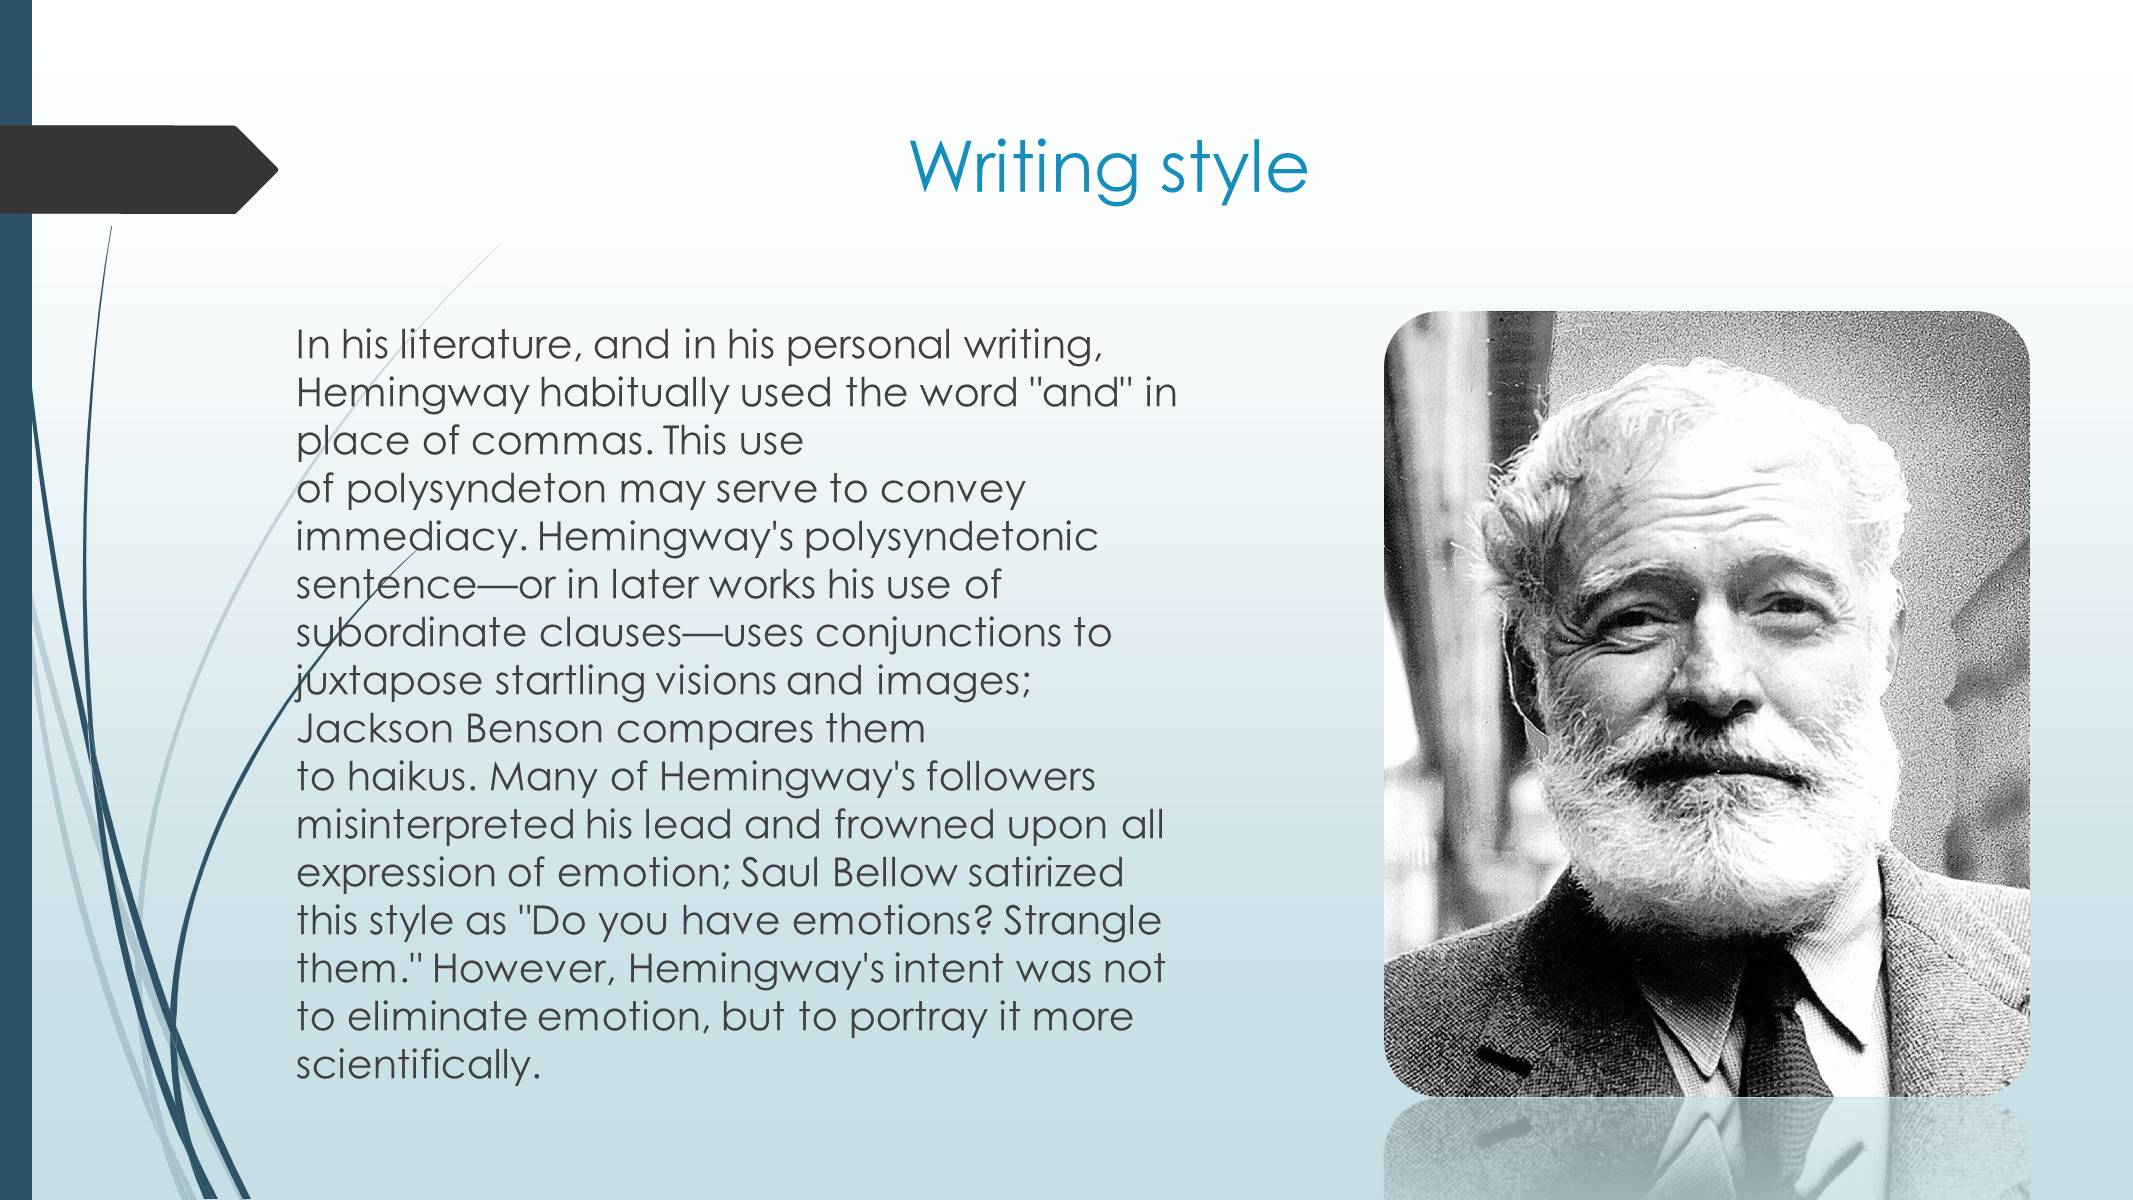 the writings of ernest hemingway Write like ernest hemingway by: admin | august 25, 2009 throughout his career hemingway experimented with style and, like any professional writer, constantly learned new techniques for example, his later writing has a more ornate sentence structure and delves more deeply into character than his early work despite these additional.